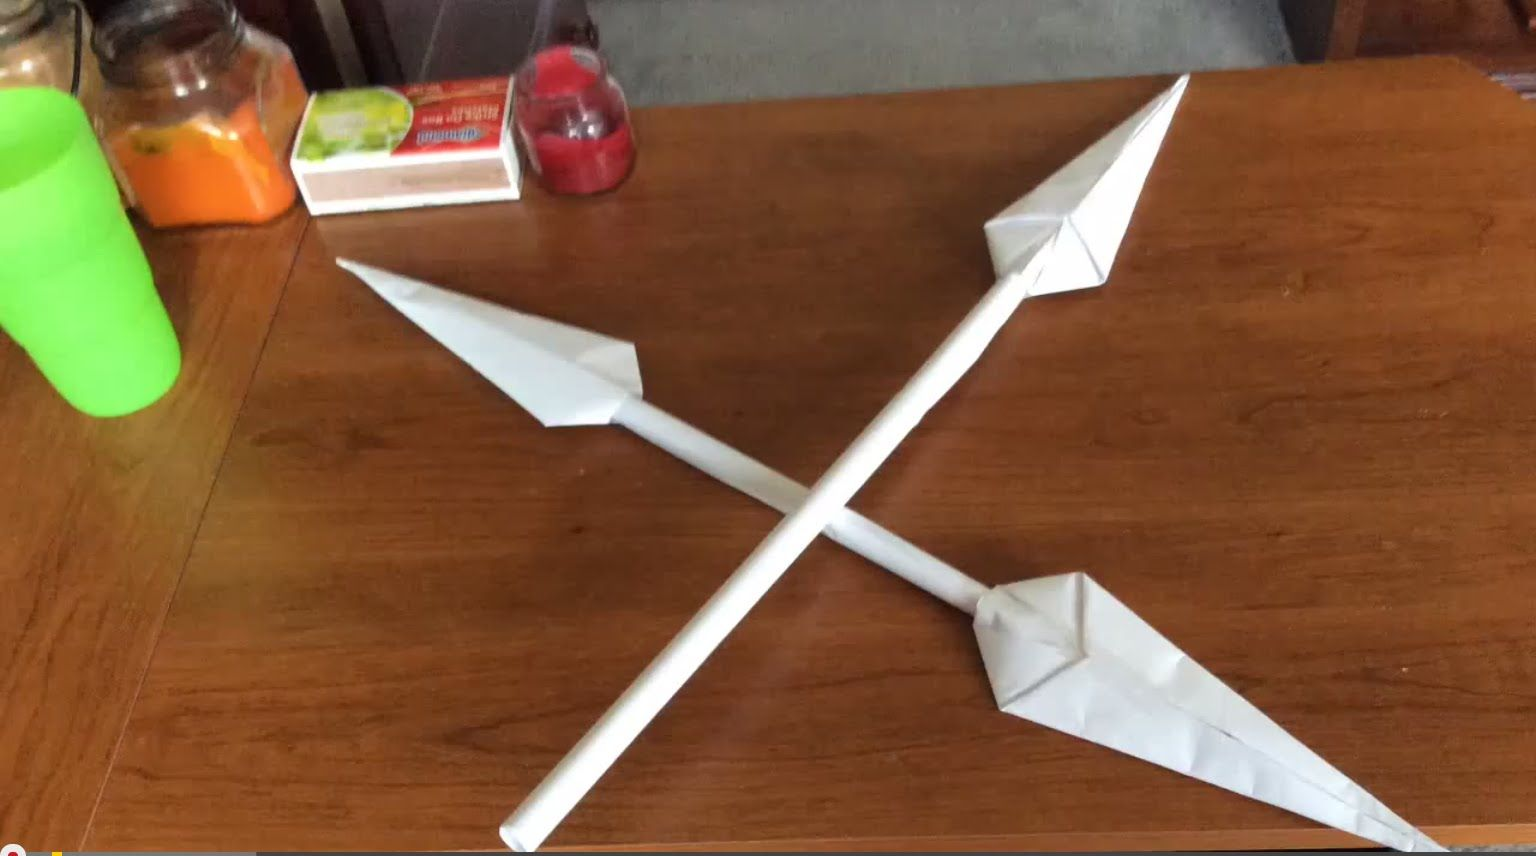 Hard Origami Sword Foldupsword Diagram How To Make A Cool Paper Spear School Home Pinterest 1536x856